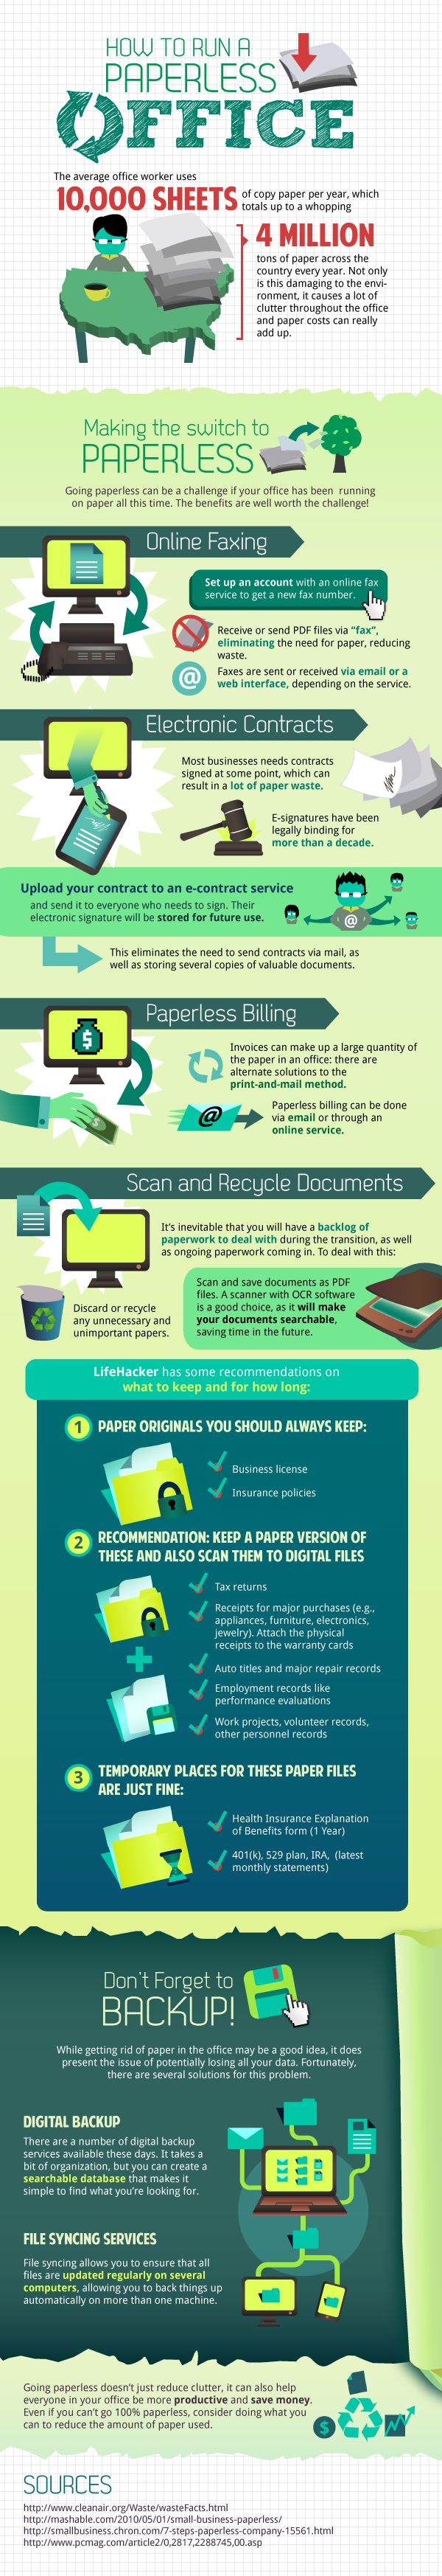 Saving hundreds of thousands of trees via copy paper waste reduction sounds like a reason enough to adopt a paperless policy - but think of all the be